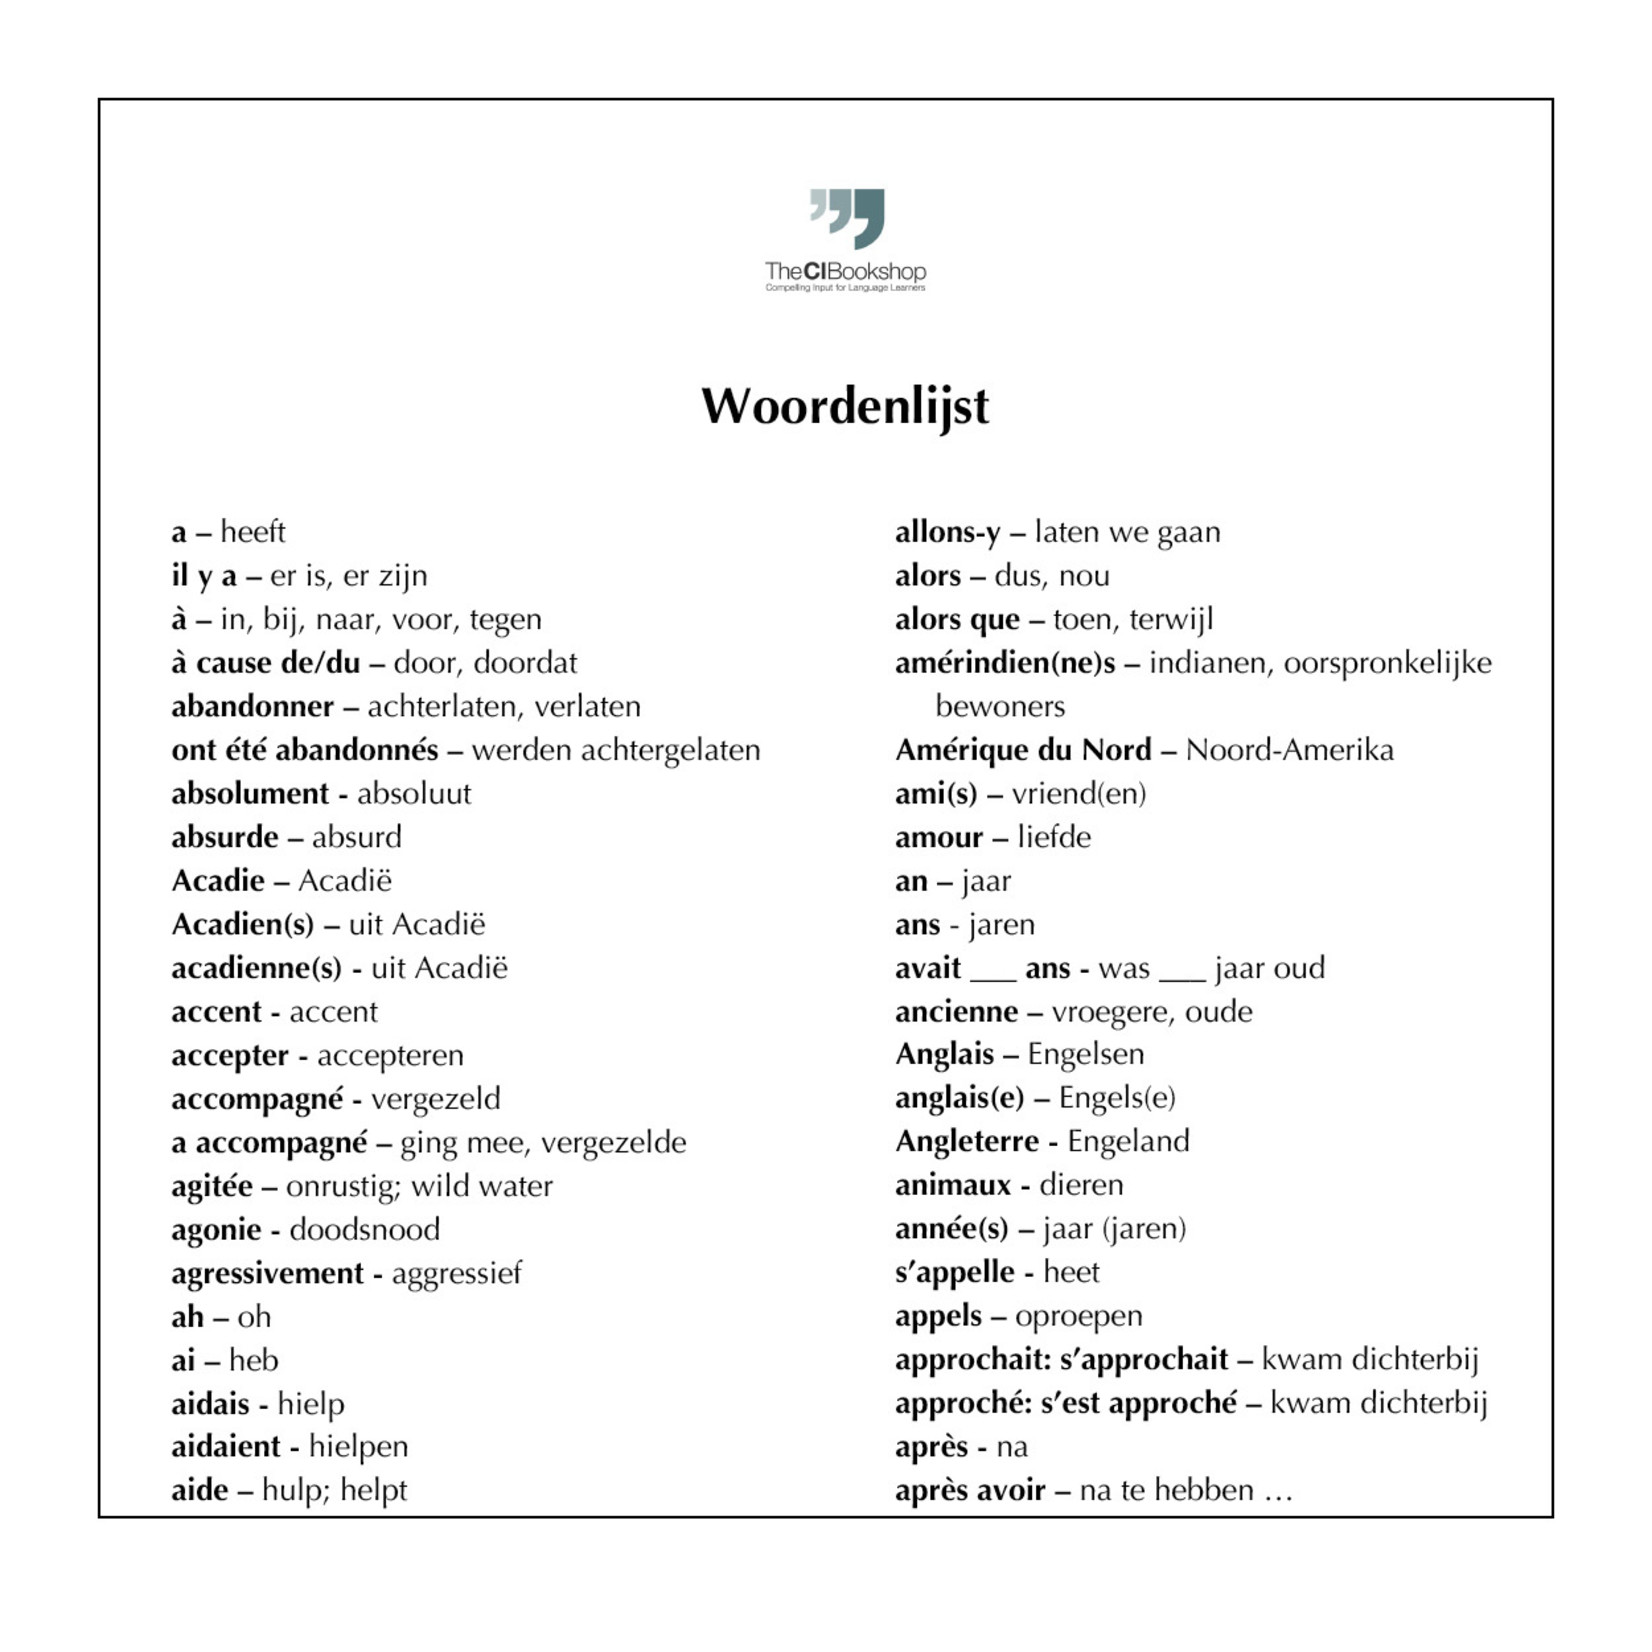 Dutch glossary for Le maillot